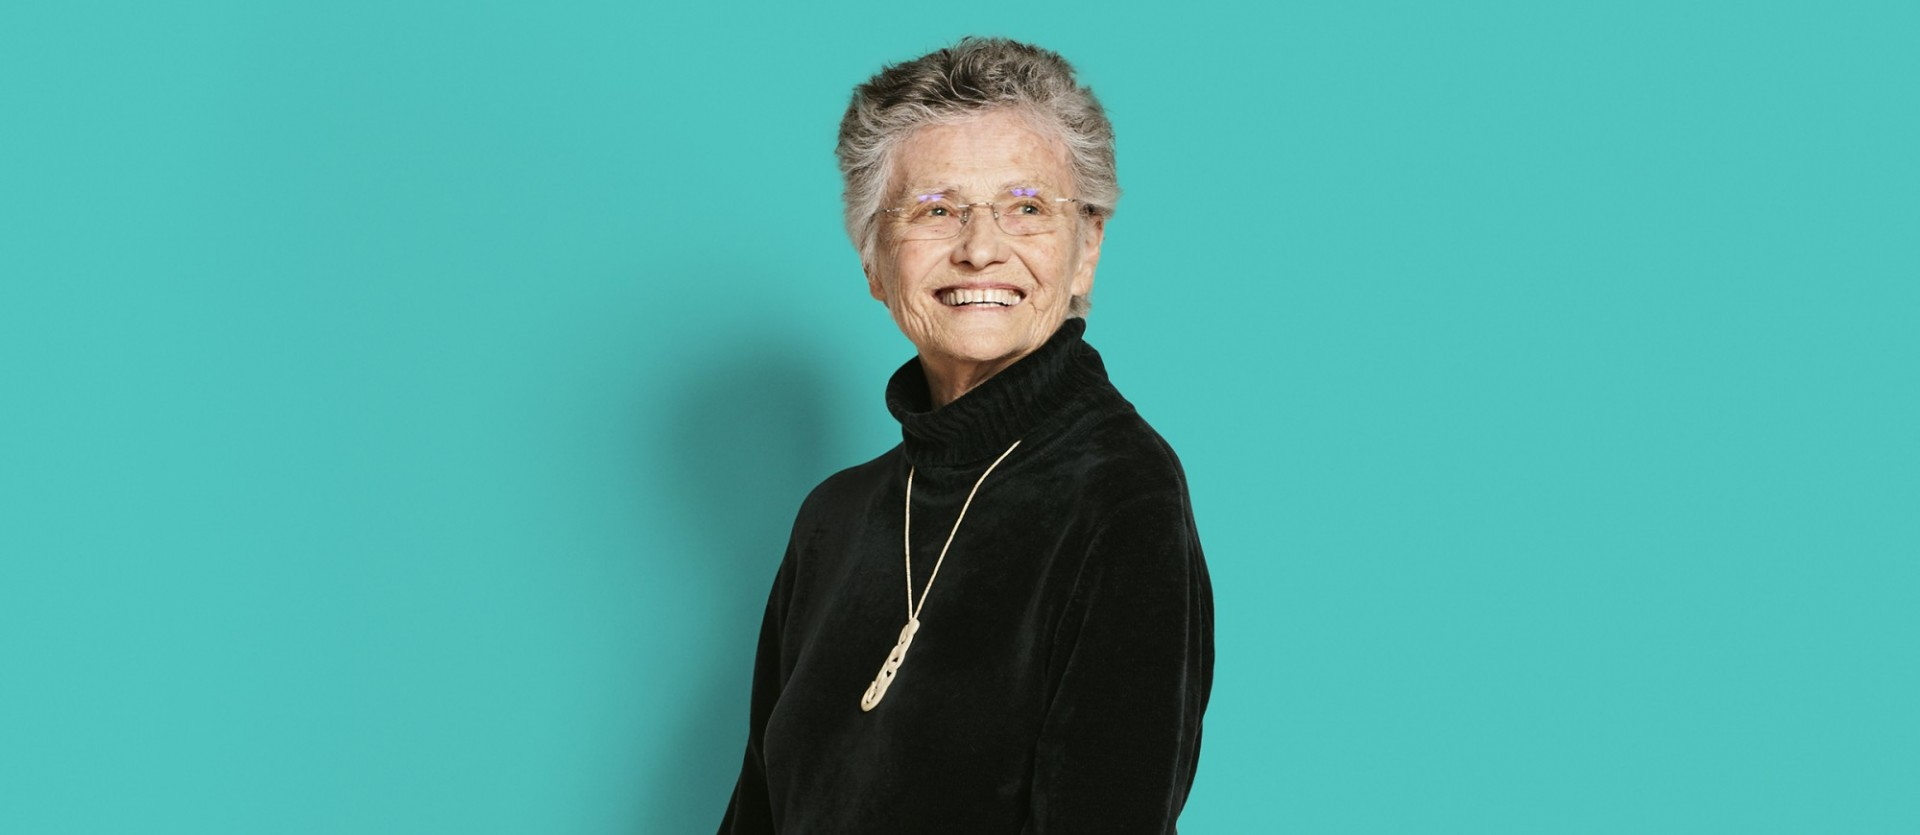 Musician Annea Lockwood: Woman with gray hair and glasses with black shirt with silver necklace in front of a turquoise-colored background.